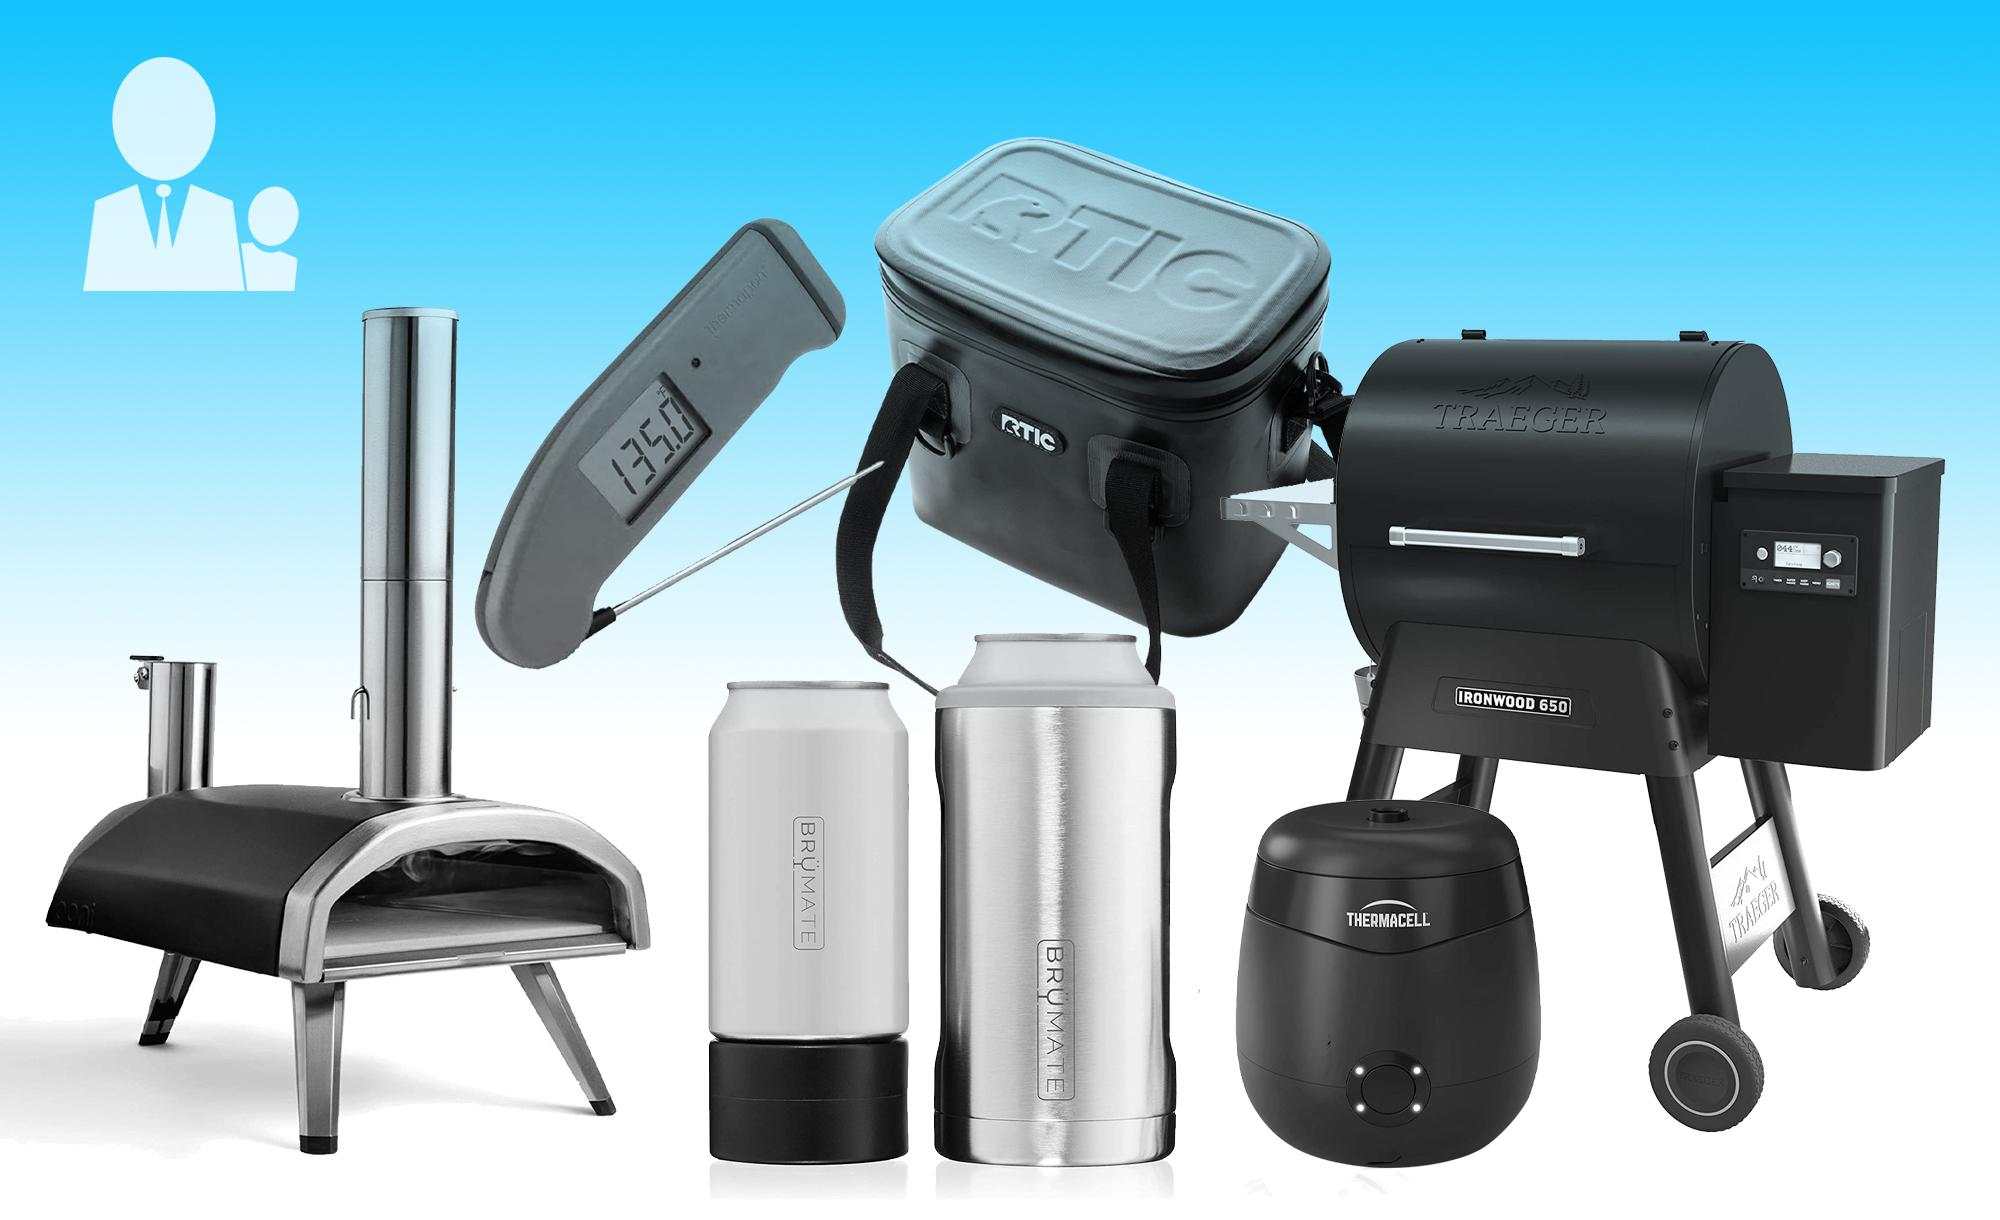 A collage or products from the Engadget Father's Day gift guide.